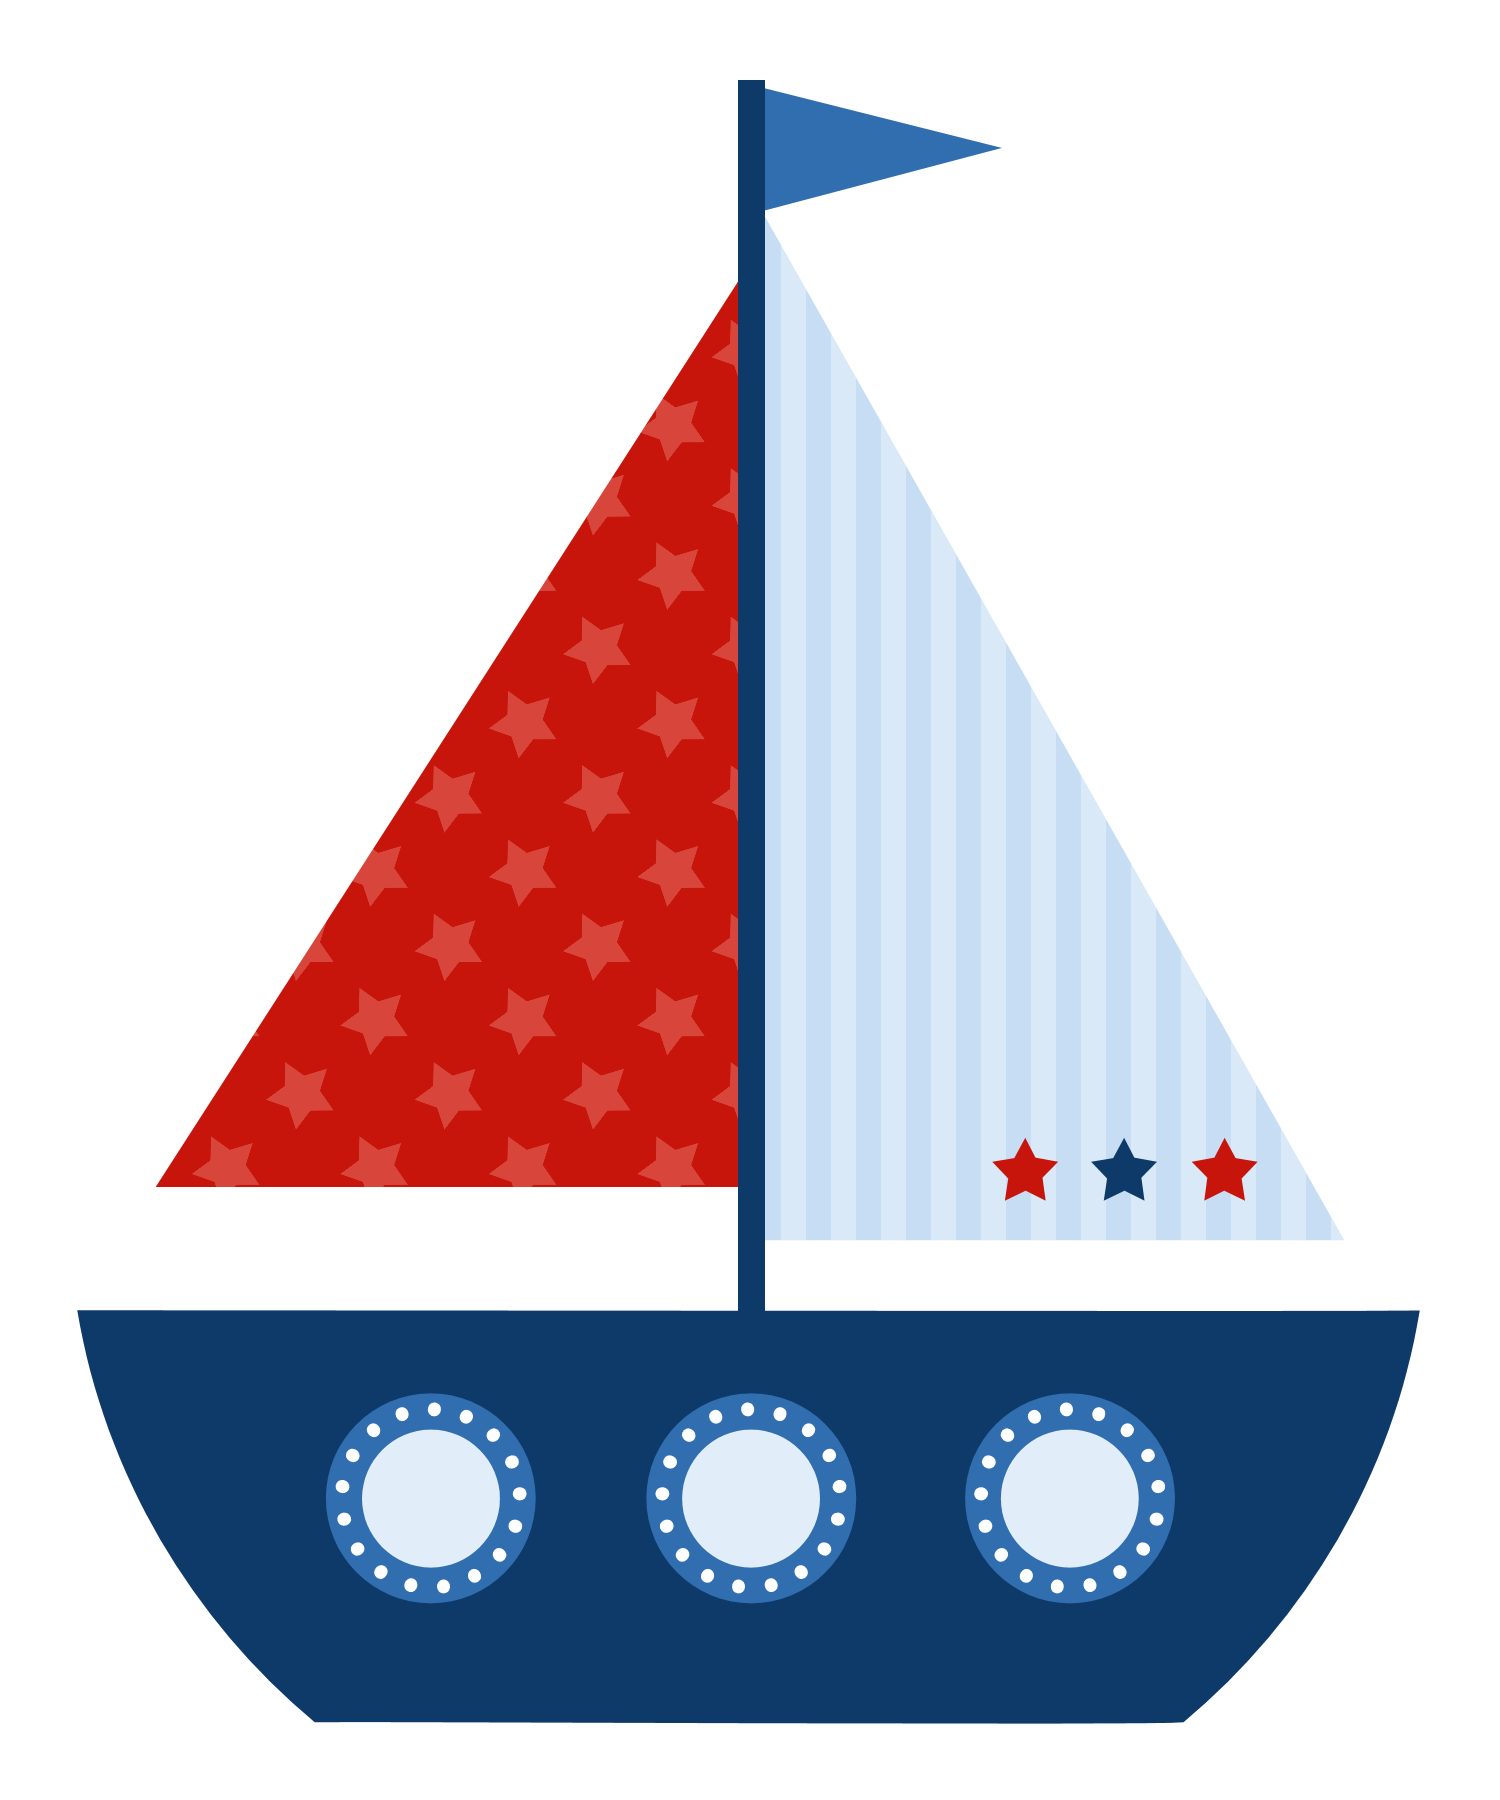 Nautical clipart red. Photo shared on meowchat